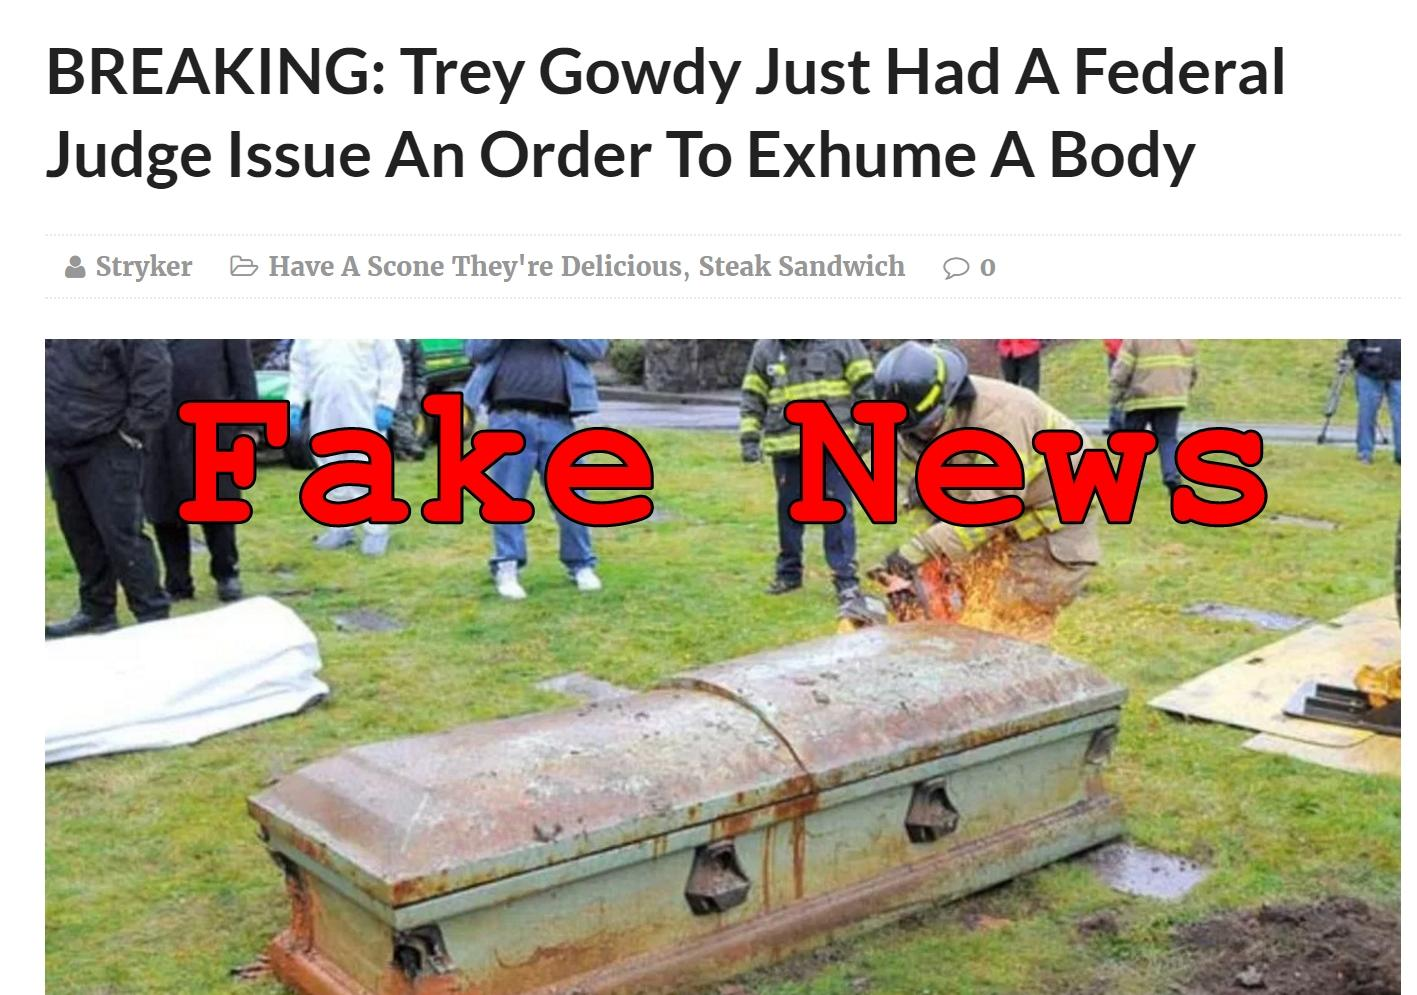 Fake News: Trey Gowdy Did NOT Have A Federal Judge Issue An Order To Exhume Body of Vince Foster